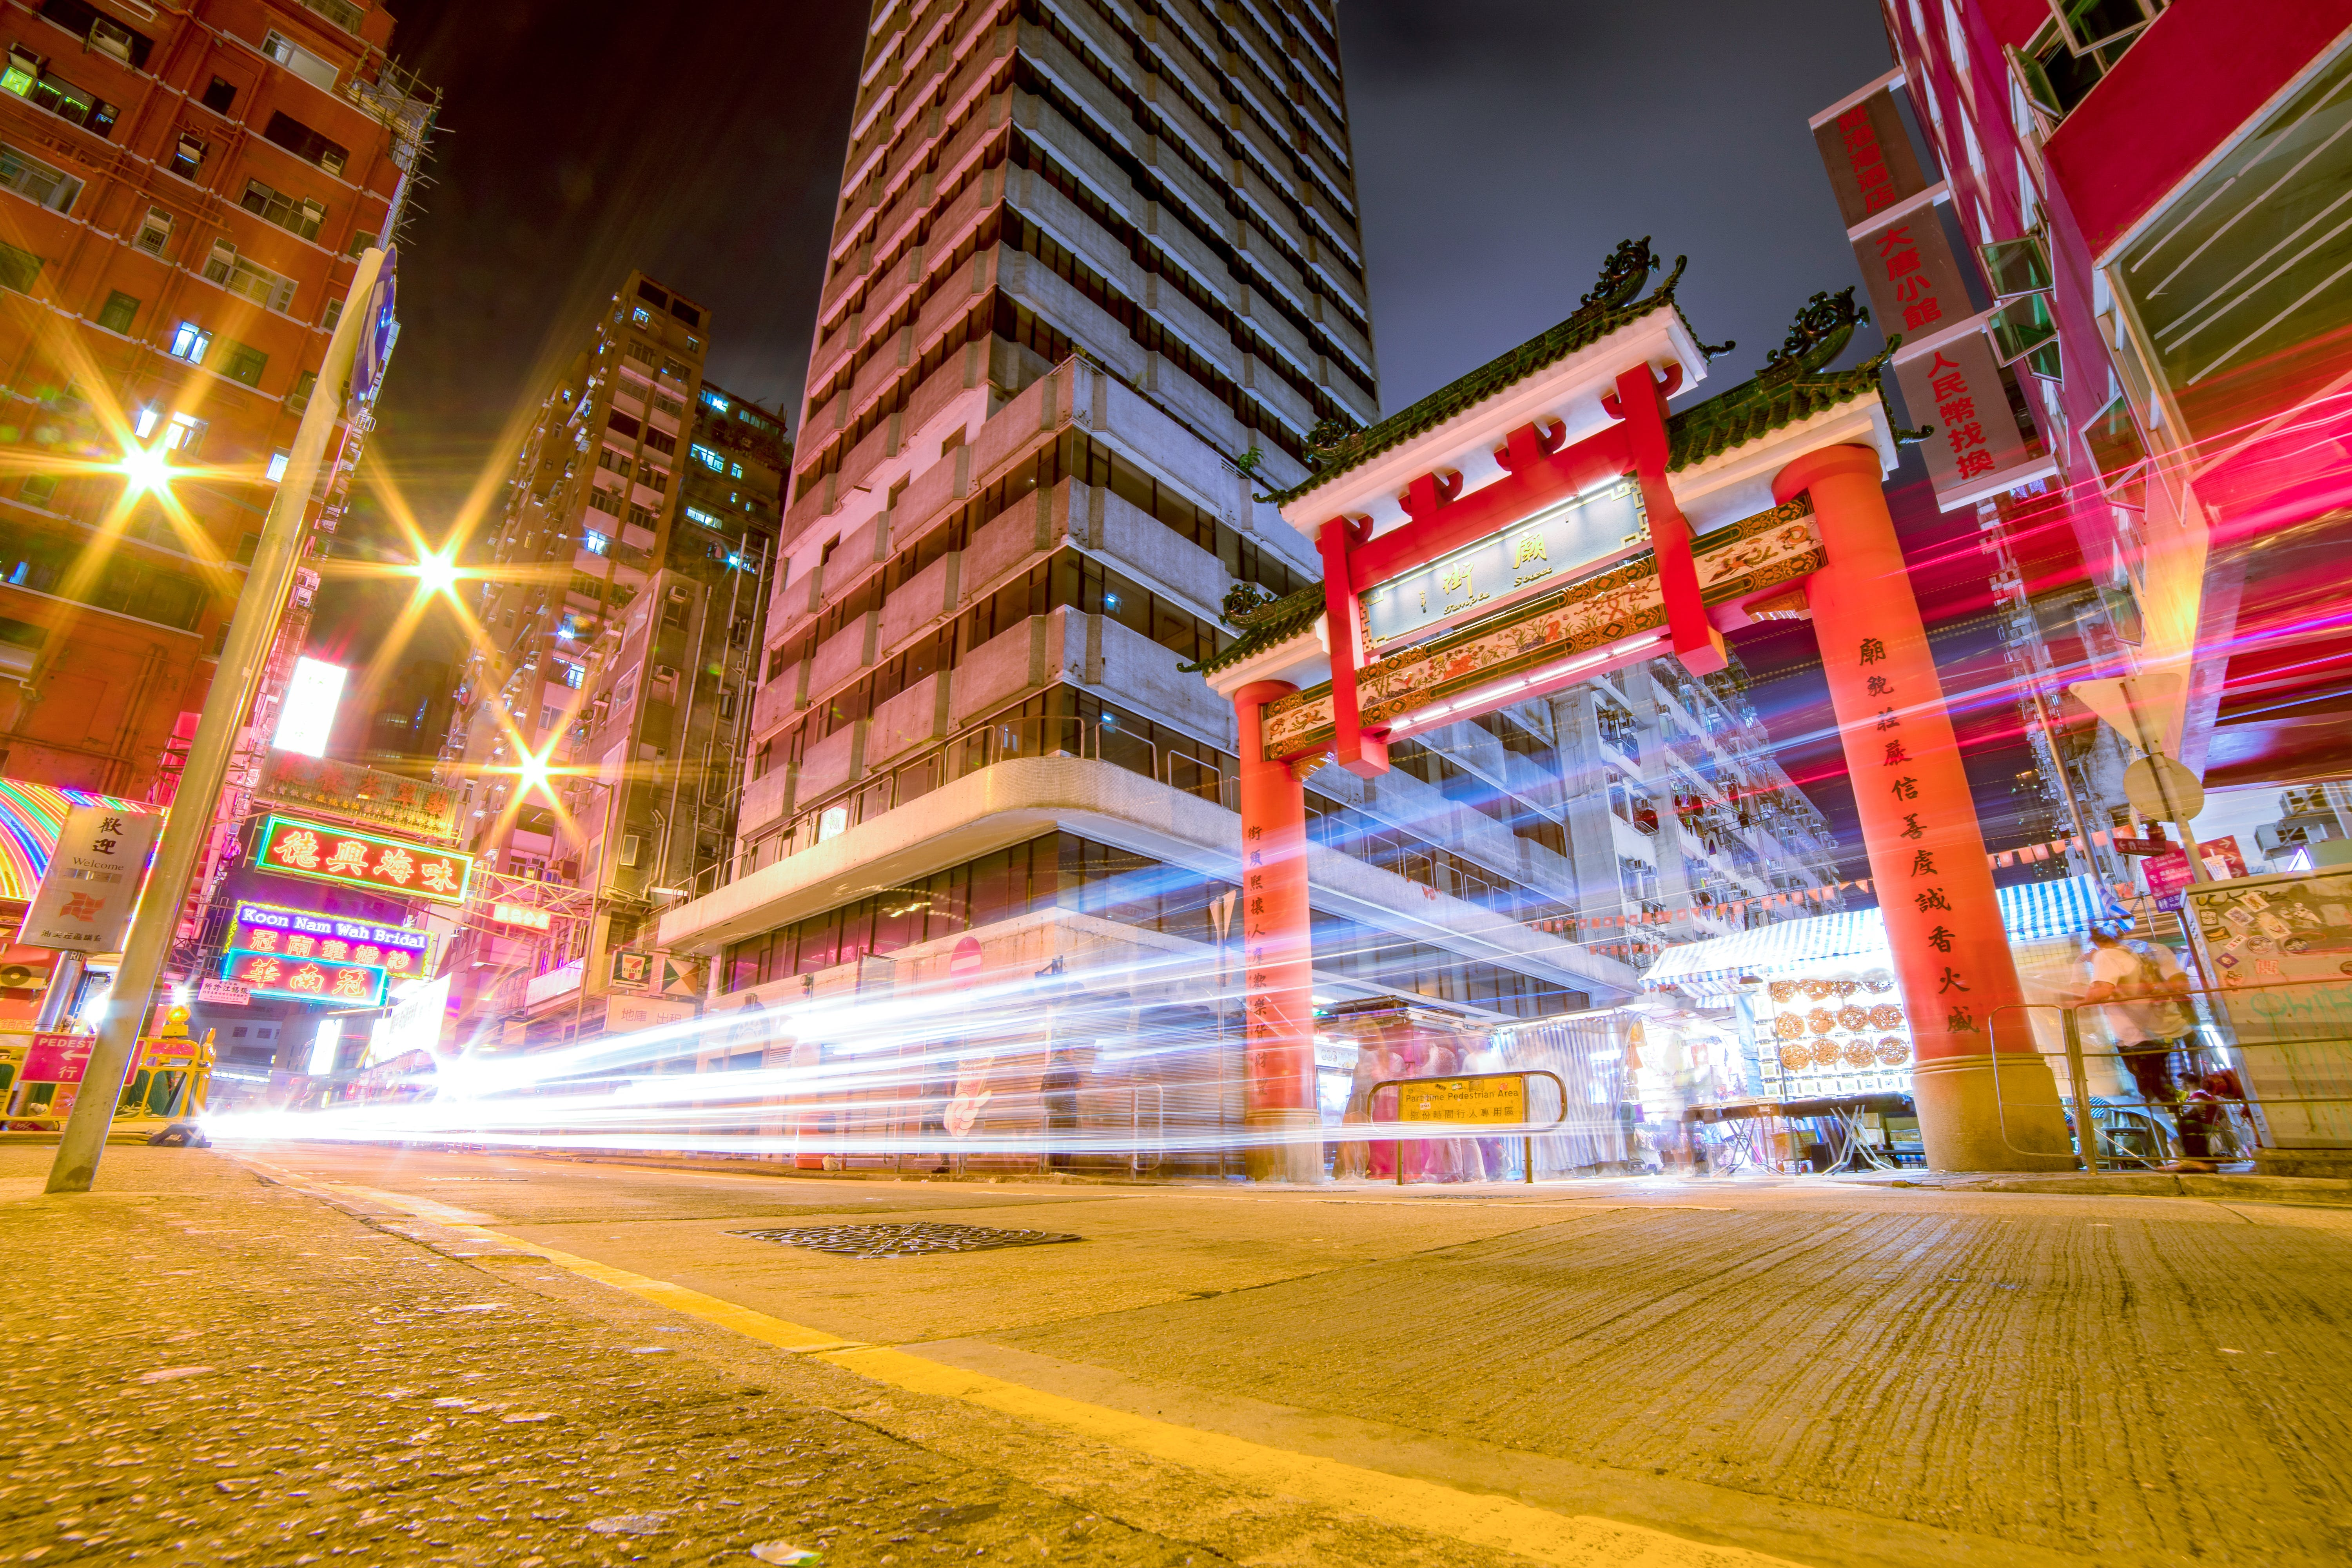 Time Lapse Photography Of Vehicles Passing Through China Town